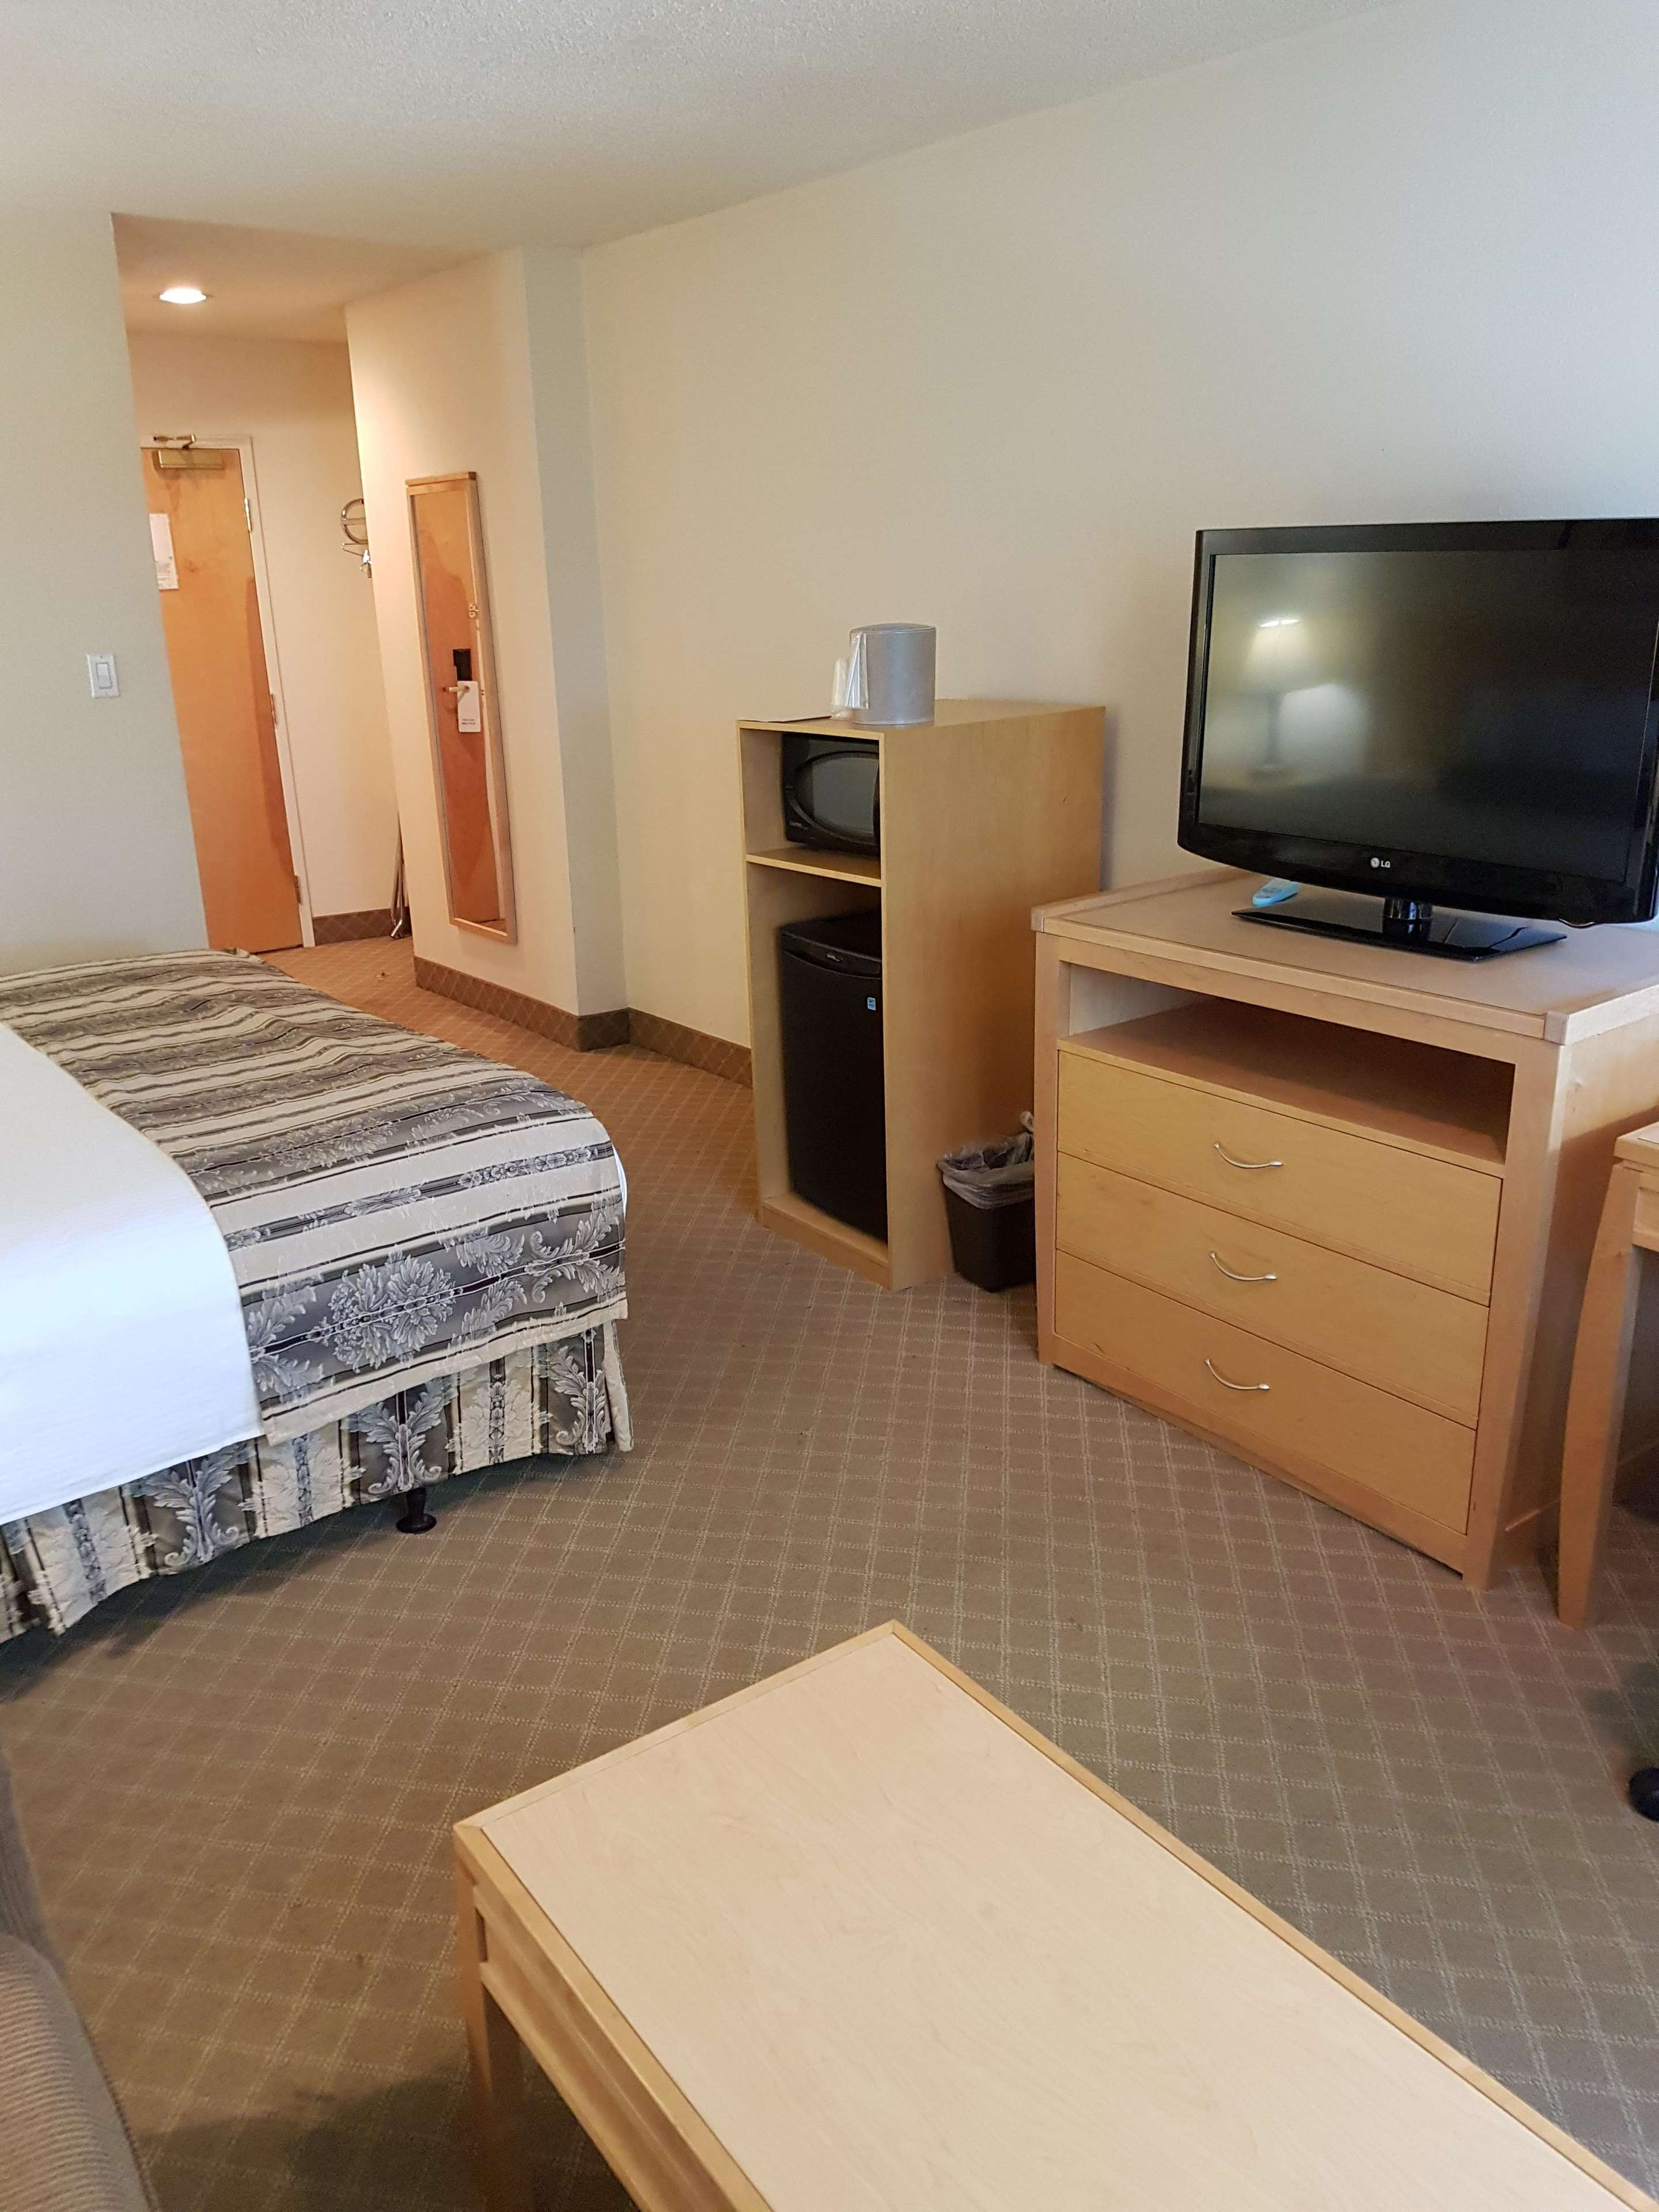 SureStay Plus Hotel by Best Western Coquitlam in Coquitlam: King with Sofabed